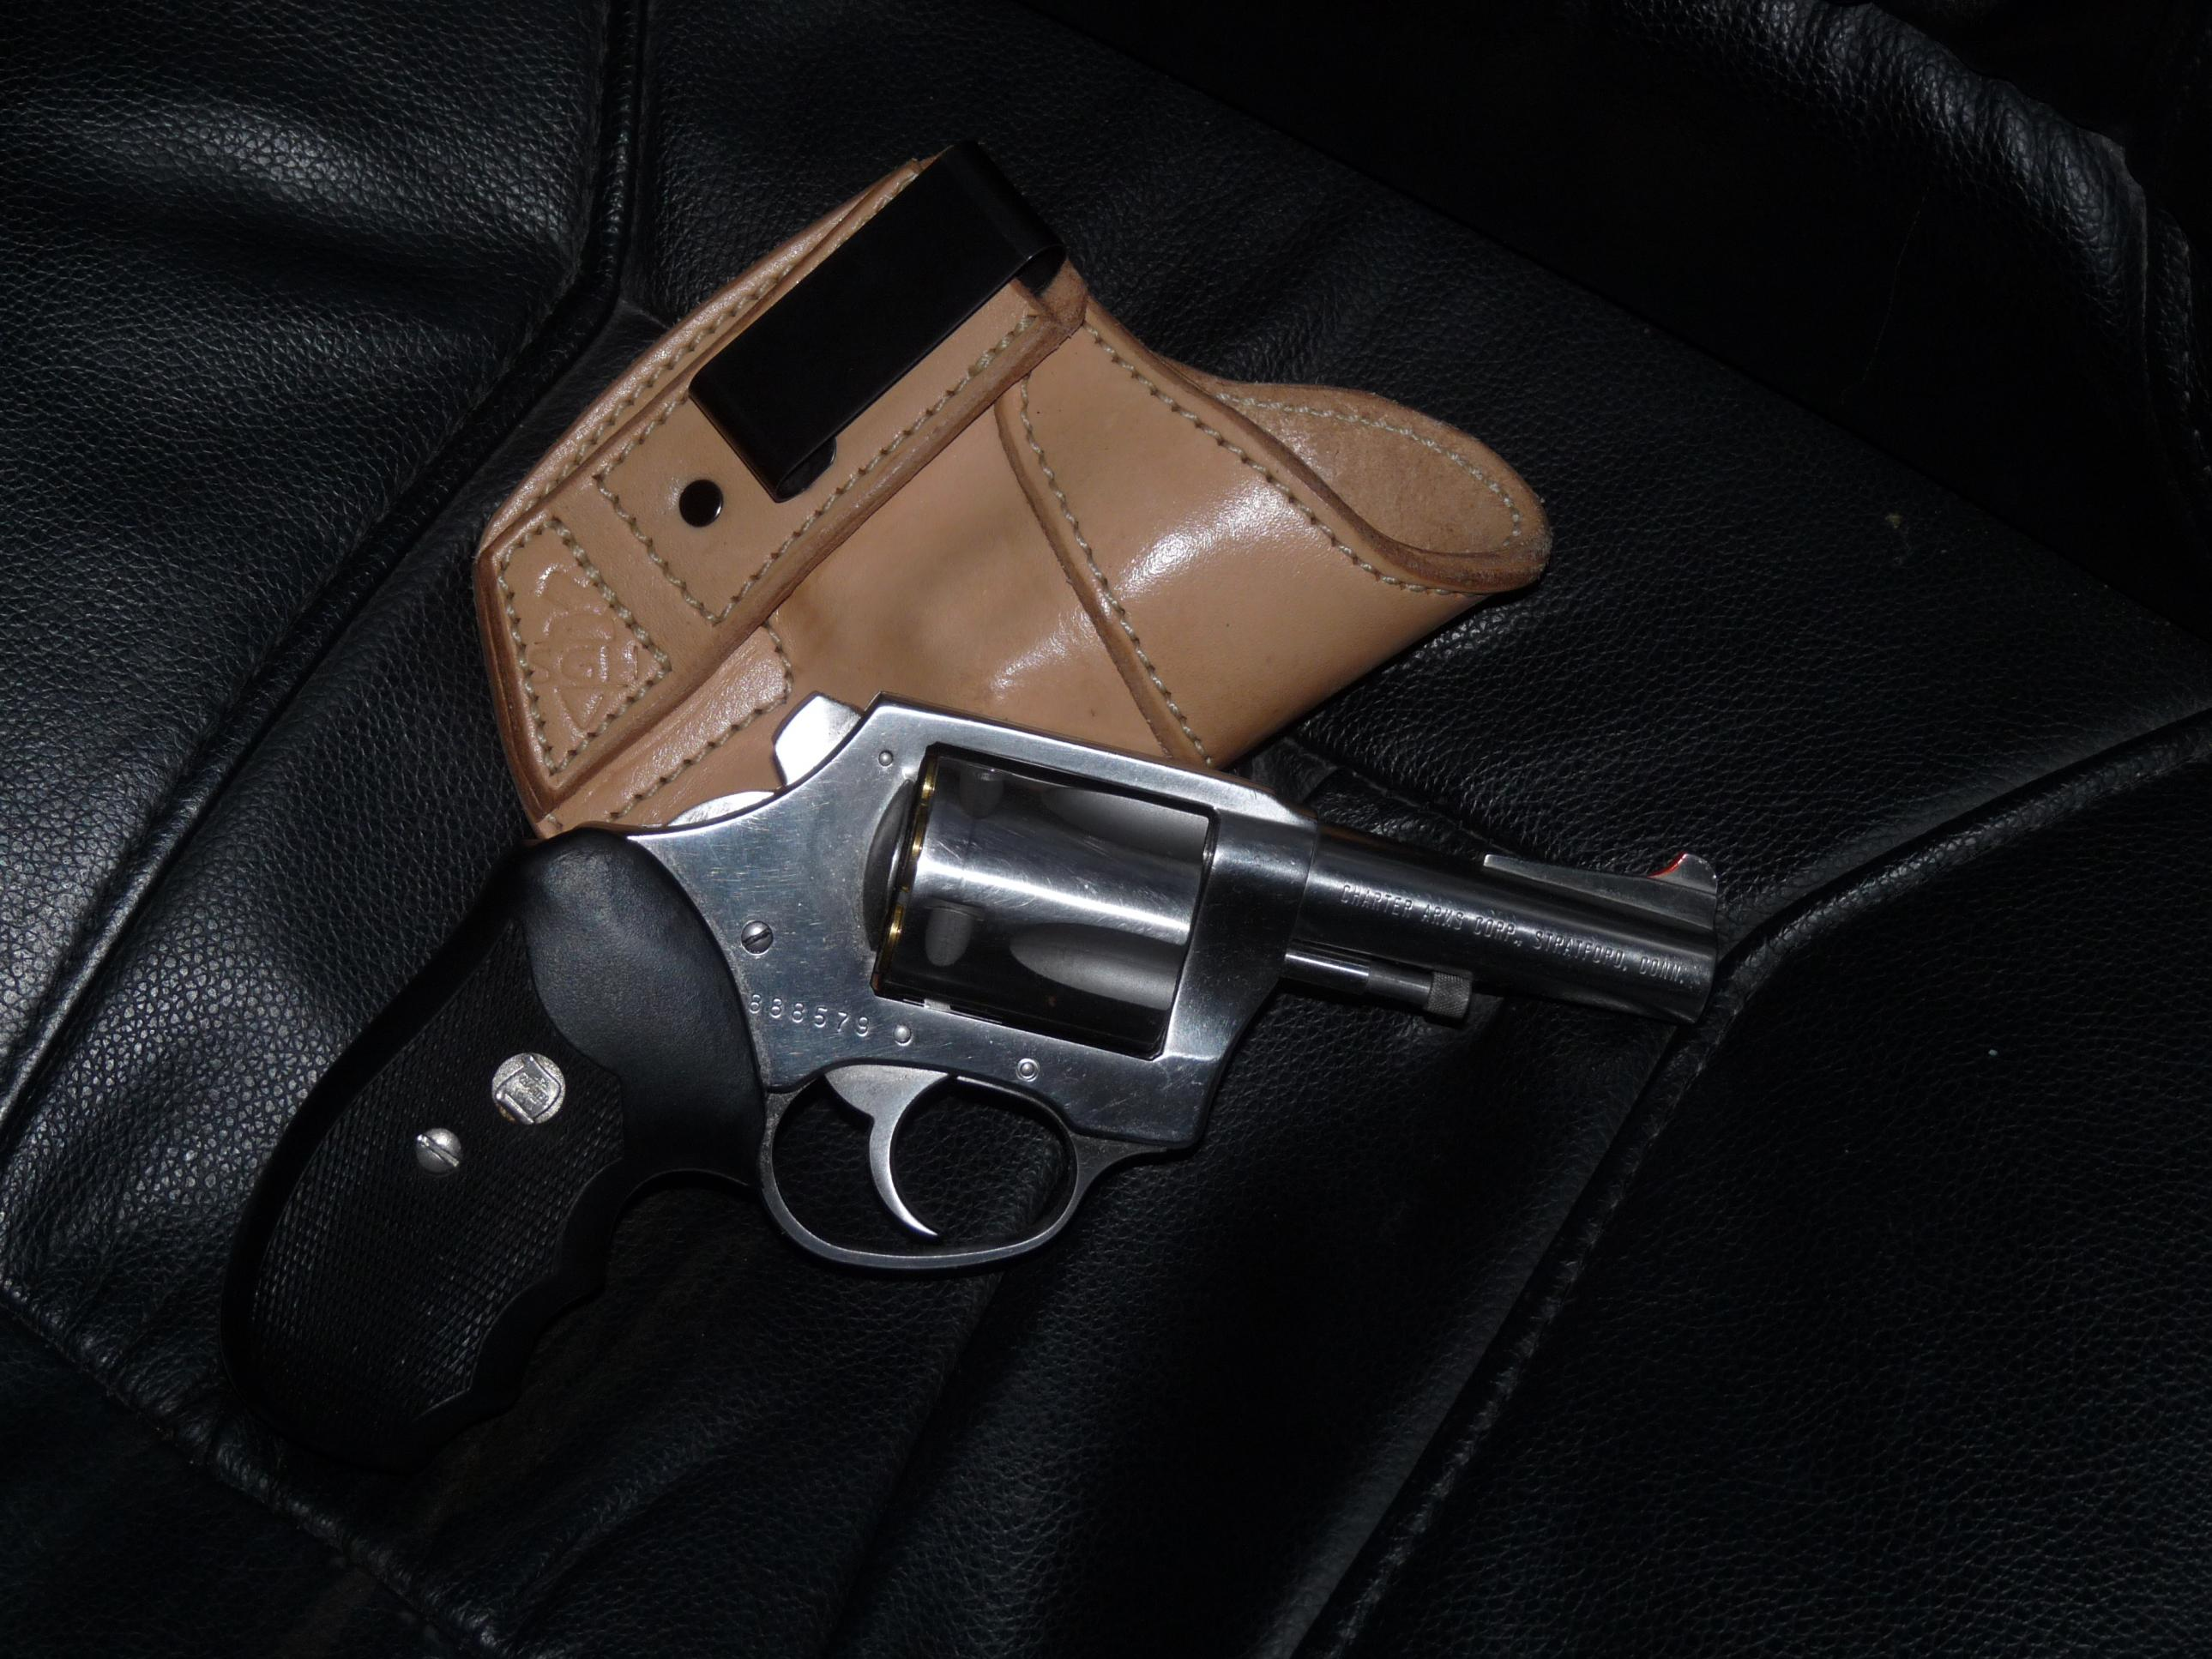 Opinions on Charter Arms Bulldog-walkabout-002.jpg